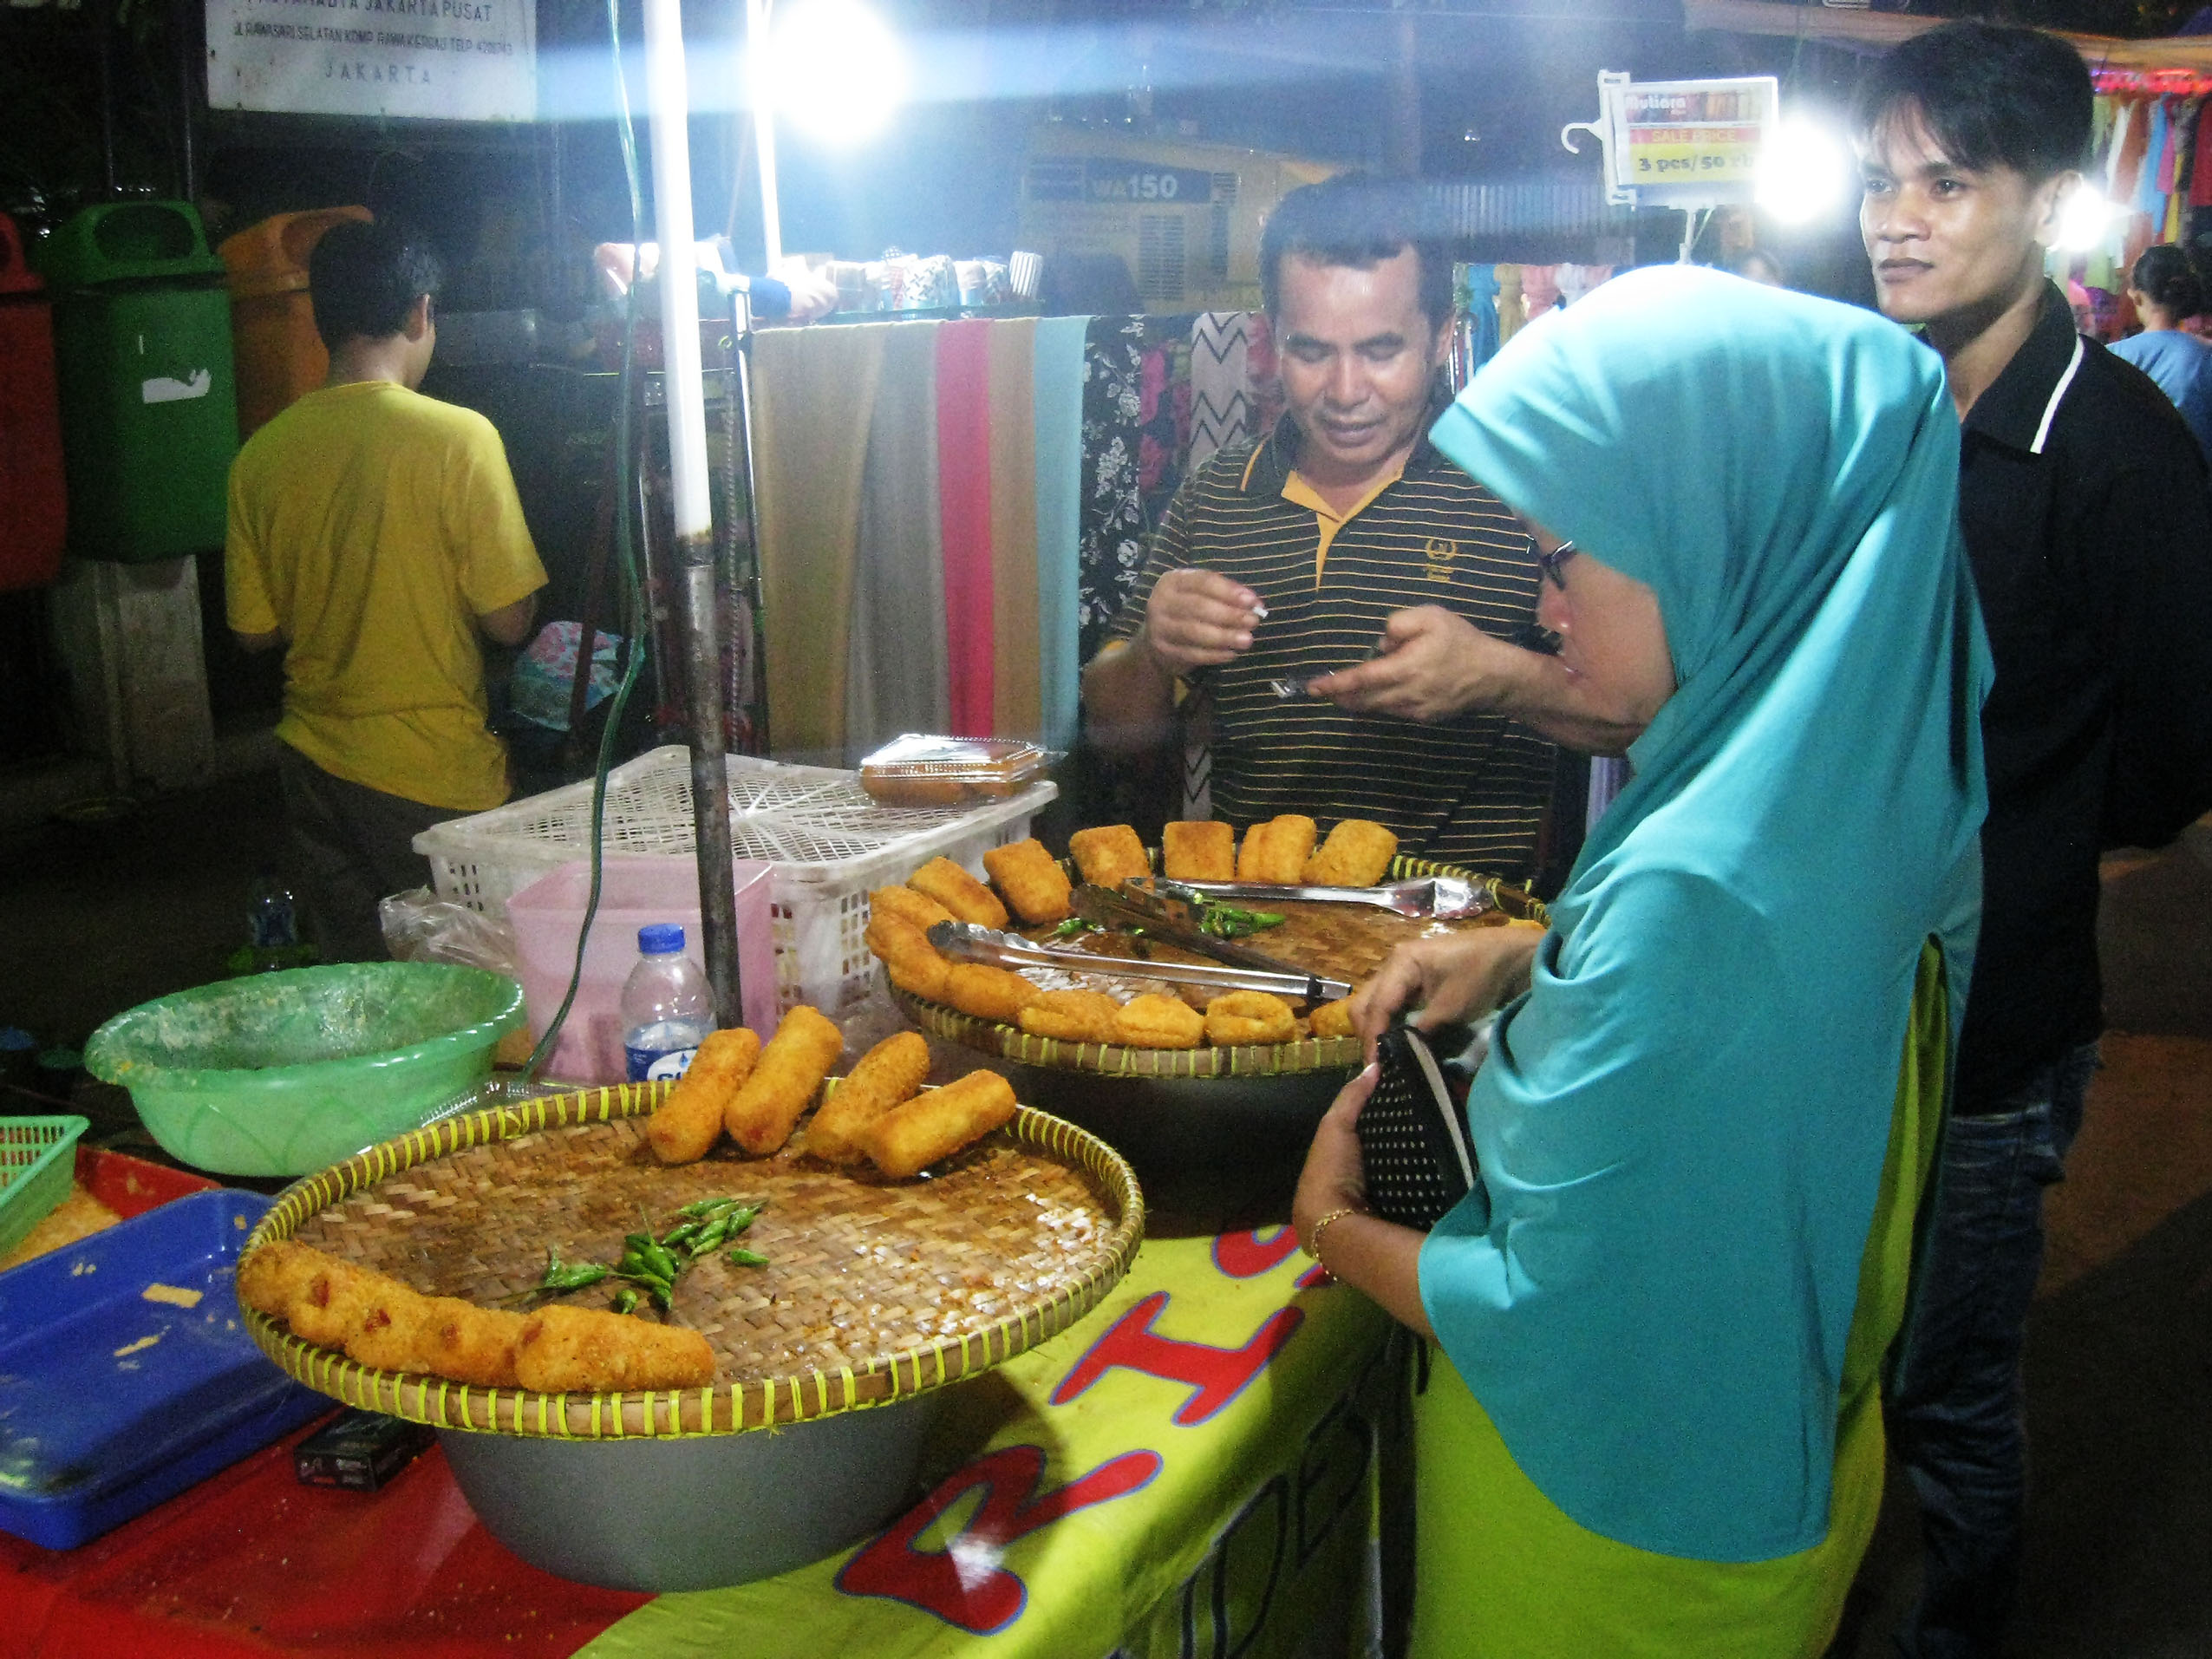 https://upload.wikimedia.org/wikipedia/commons/8/85/Pasar_Malam_Rawasari_6.JPG